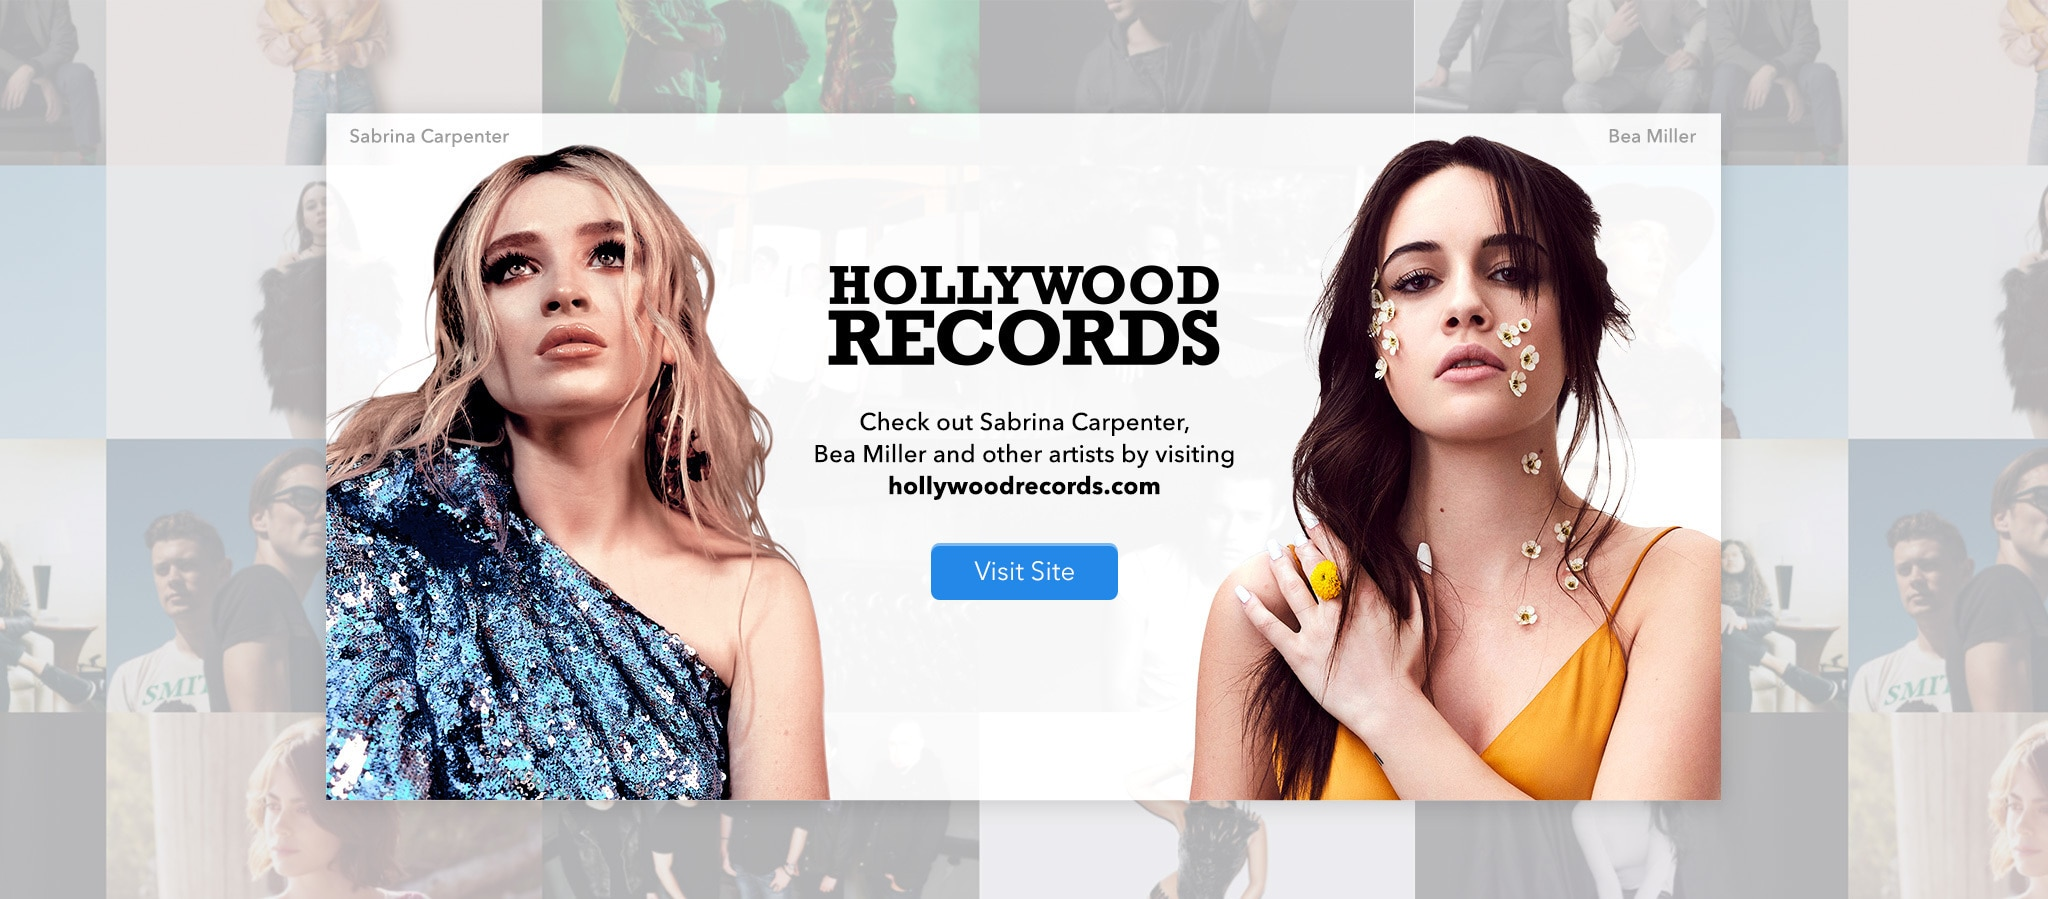 Hollywood Records - Check out Bea Miller, Olivia Hold and other artists by visiting hollywood records dot com